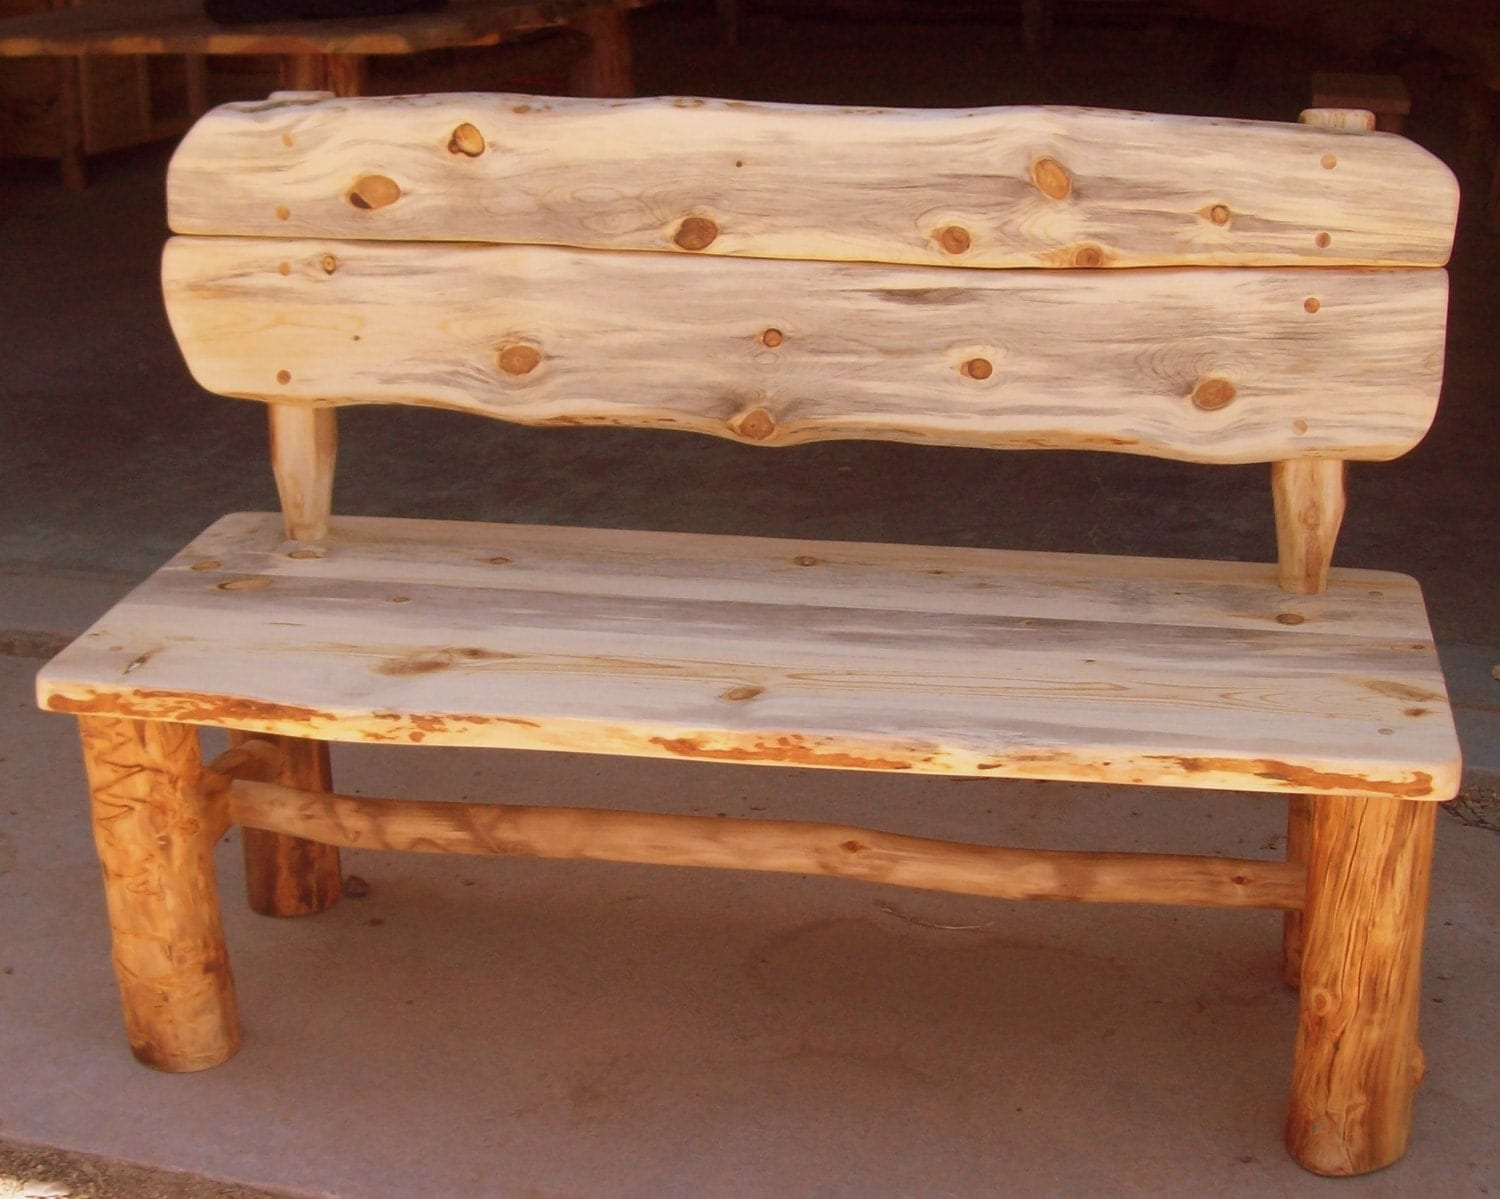 Image gallery handcrafted rustic furniture Pictures of rustic furniture